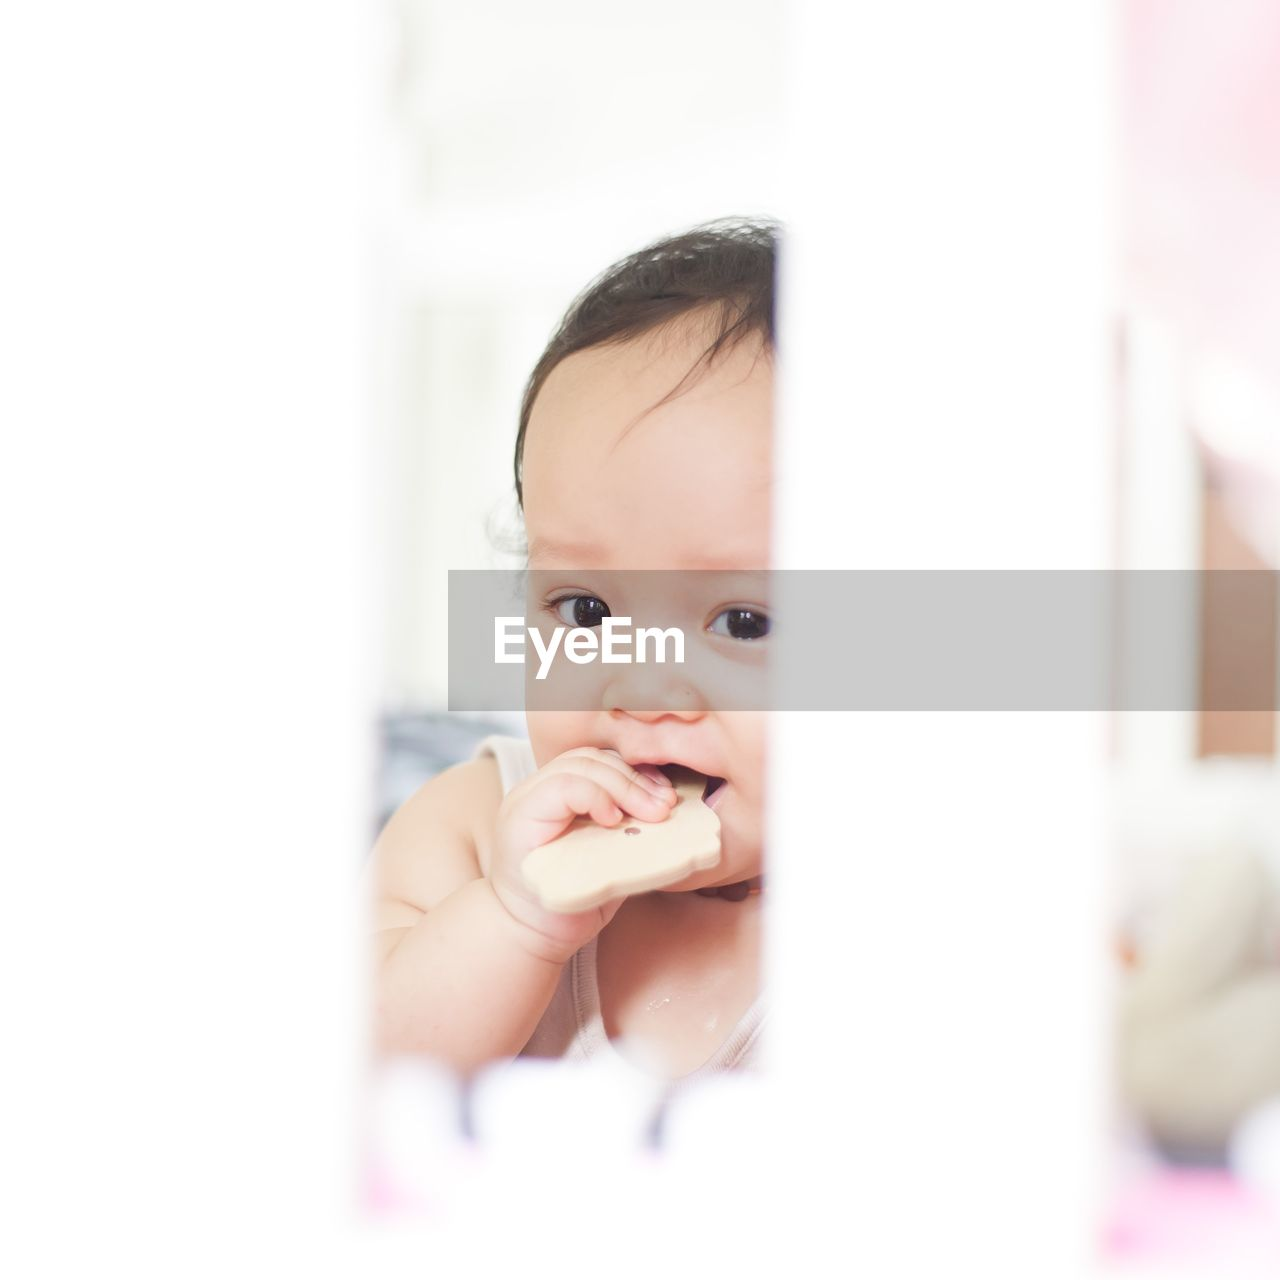 baby, childhood, real people, innocence, one person, indoors, babyhood, cute, home interior, toddler, looking at camera, lifestyles, close-up, portrait, human hand, day